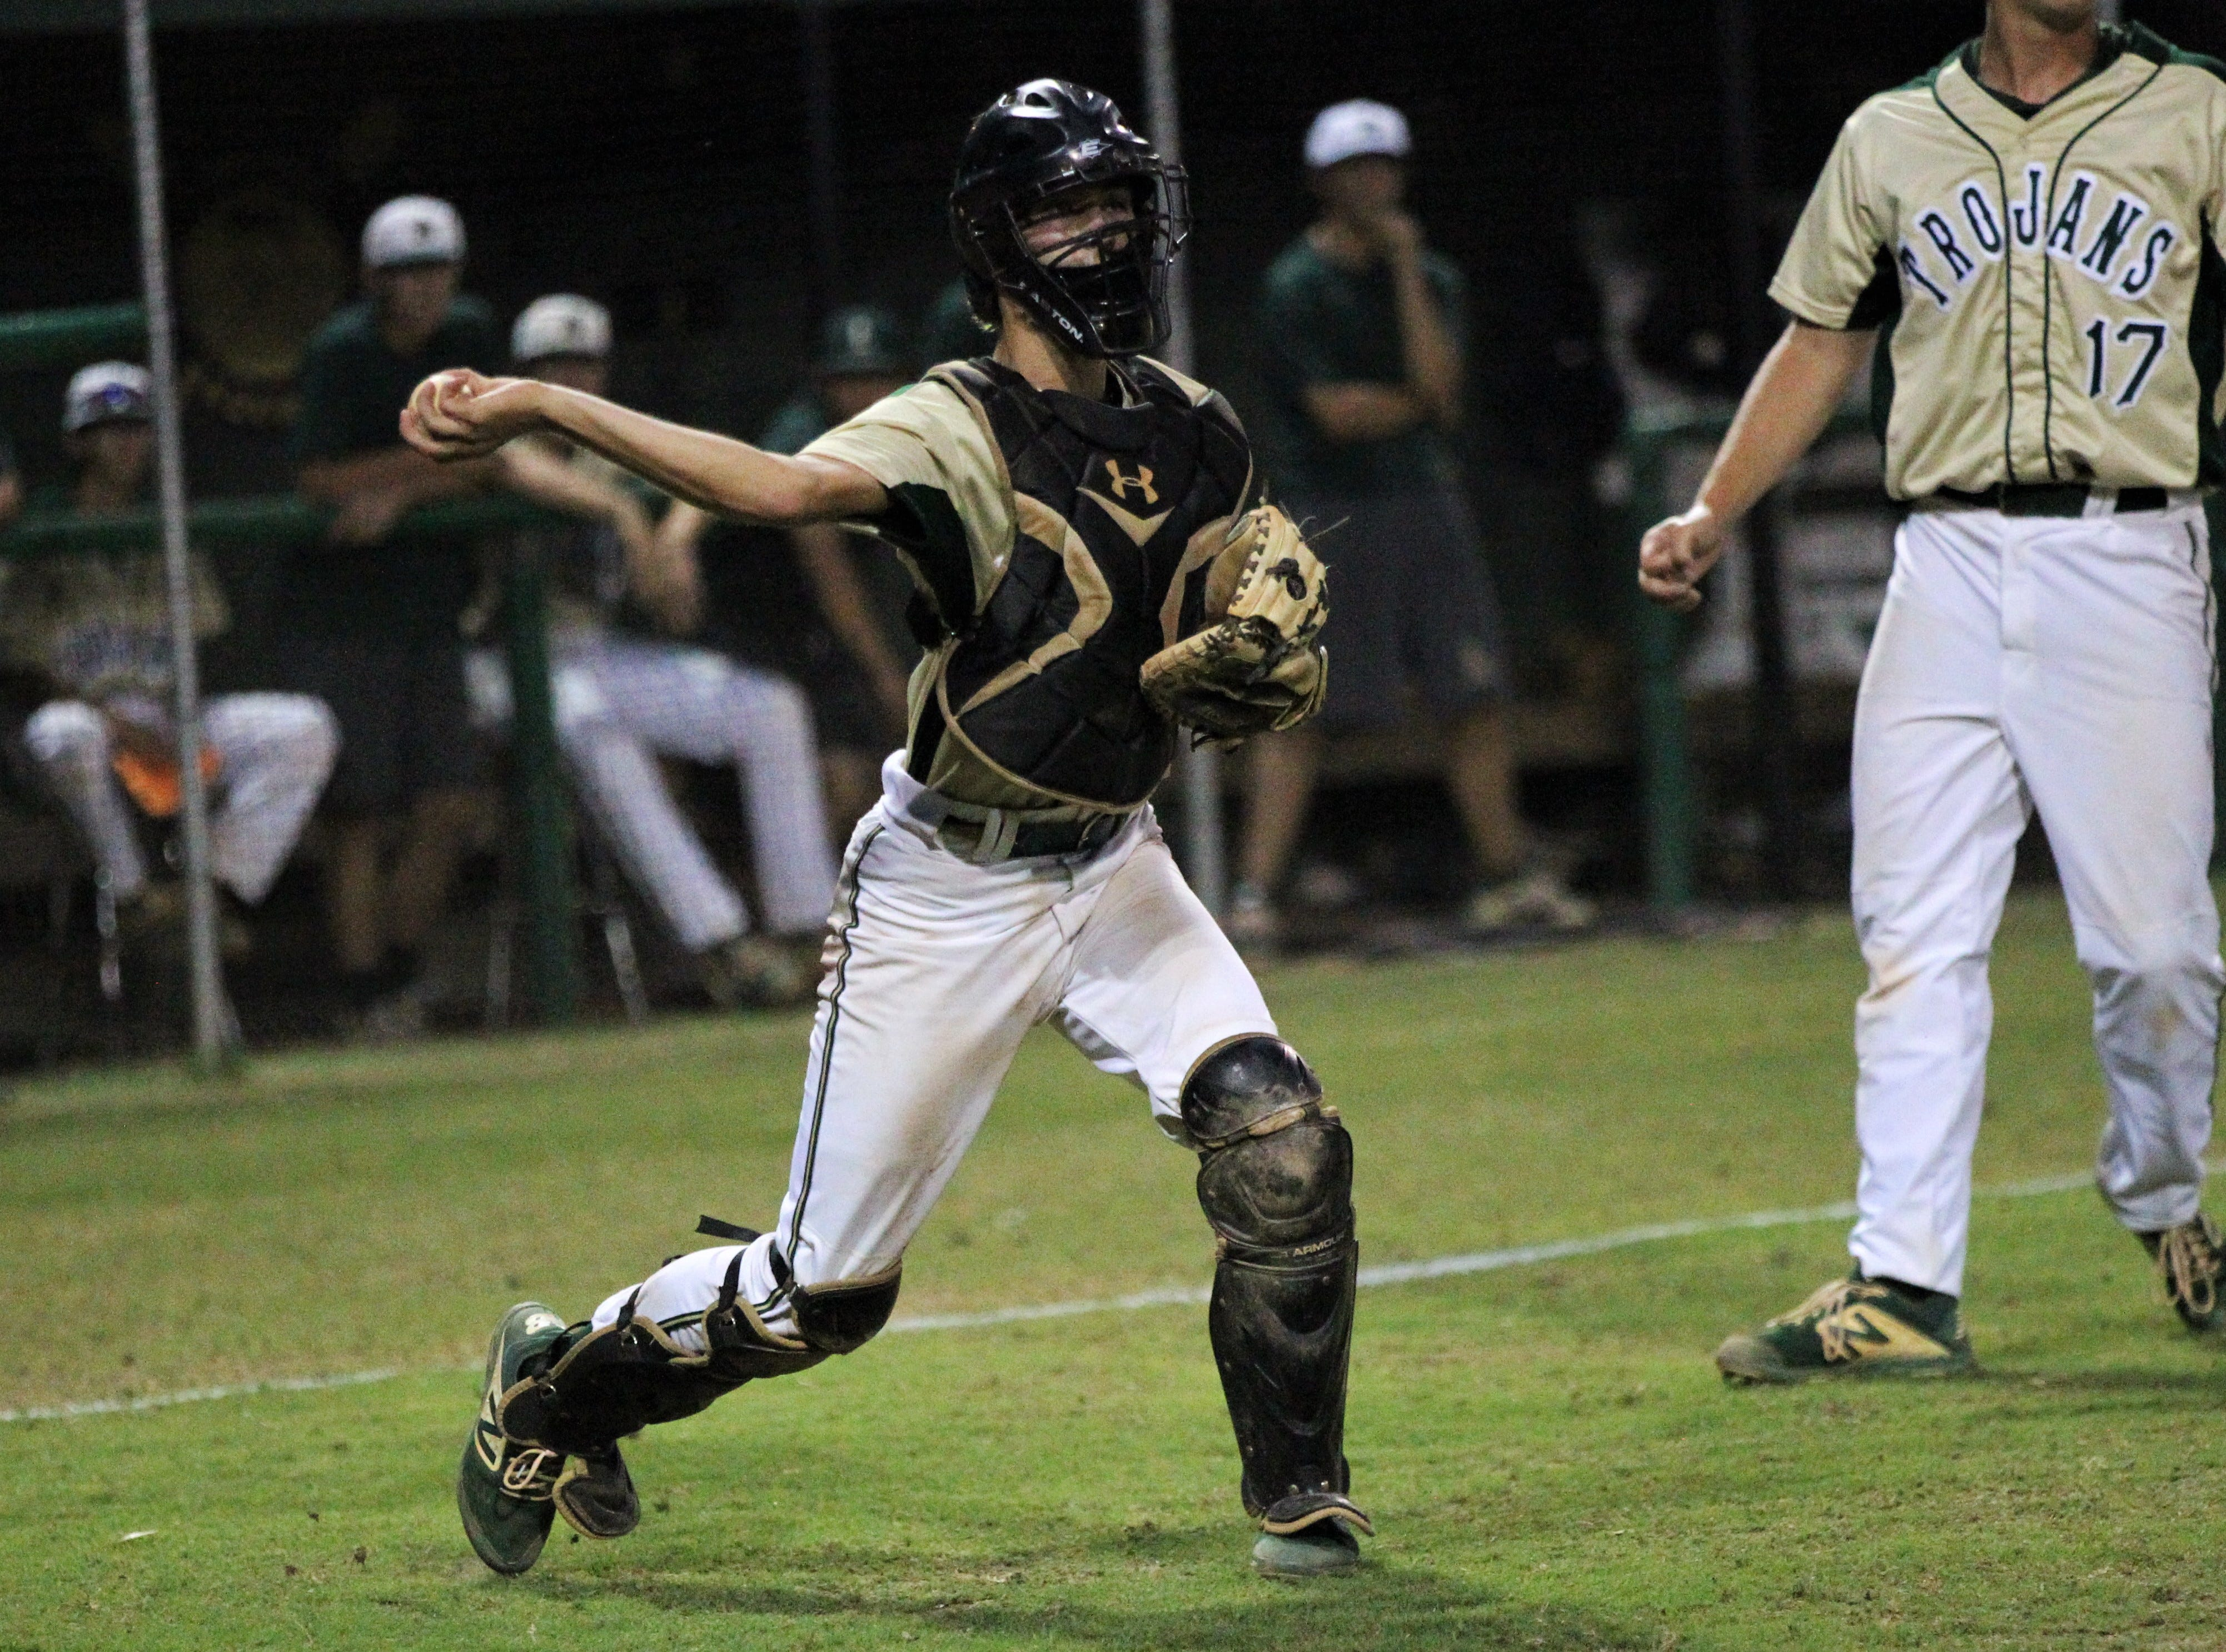 Lincoln catcher Hunter Peschl throws to first on a bunt as Lincoln baseball beat Chiles 5-4  in 10 innings during a District 2-8A championship game on Thursday, May 9, 2019.